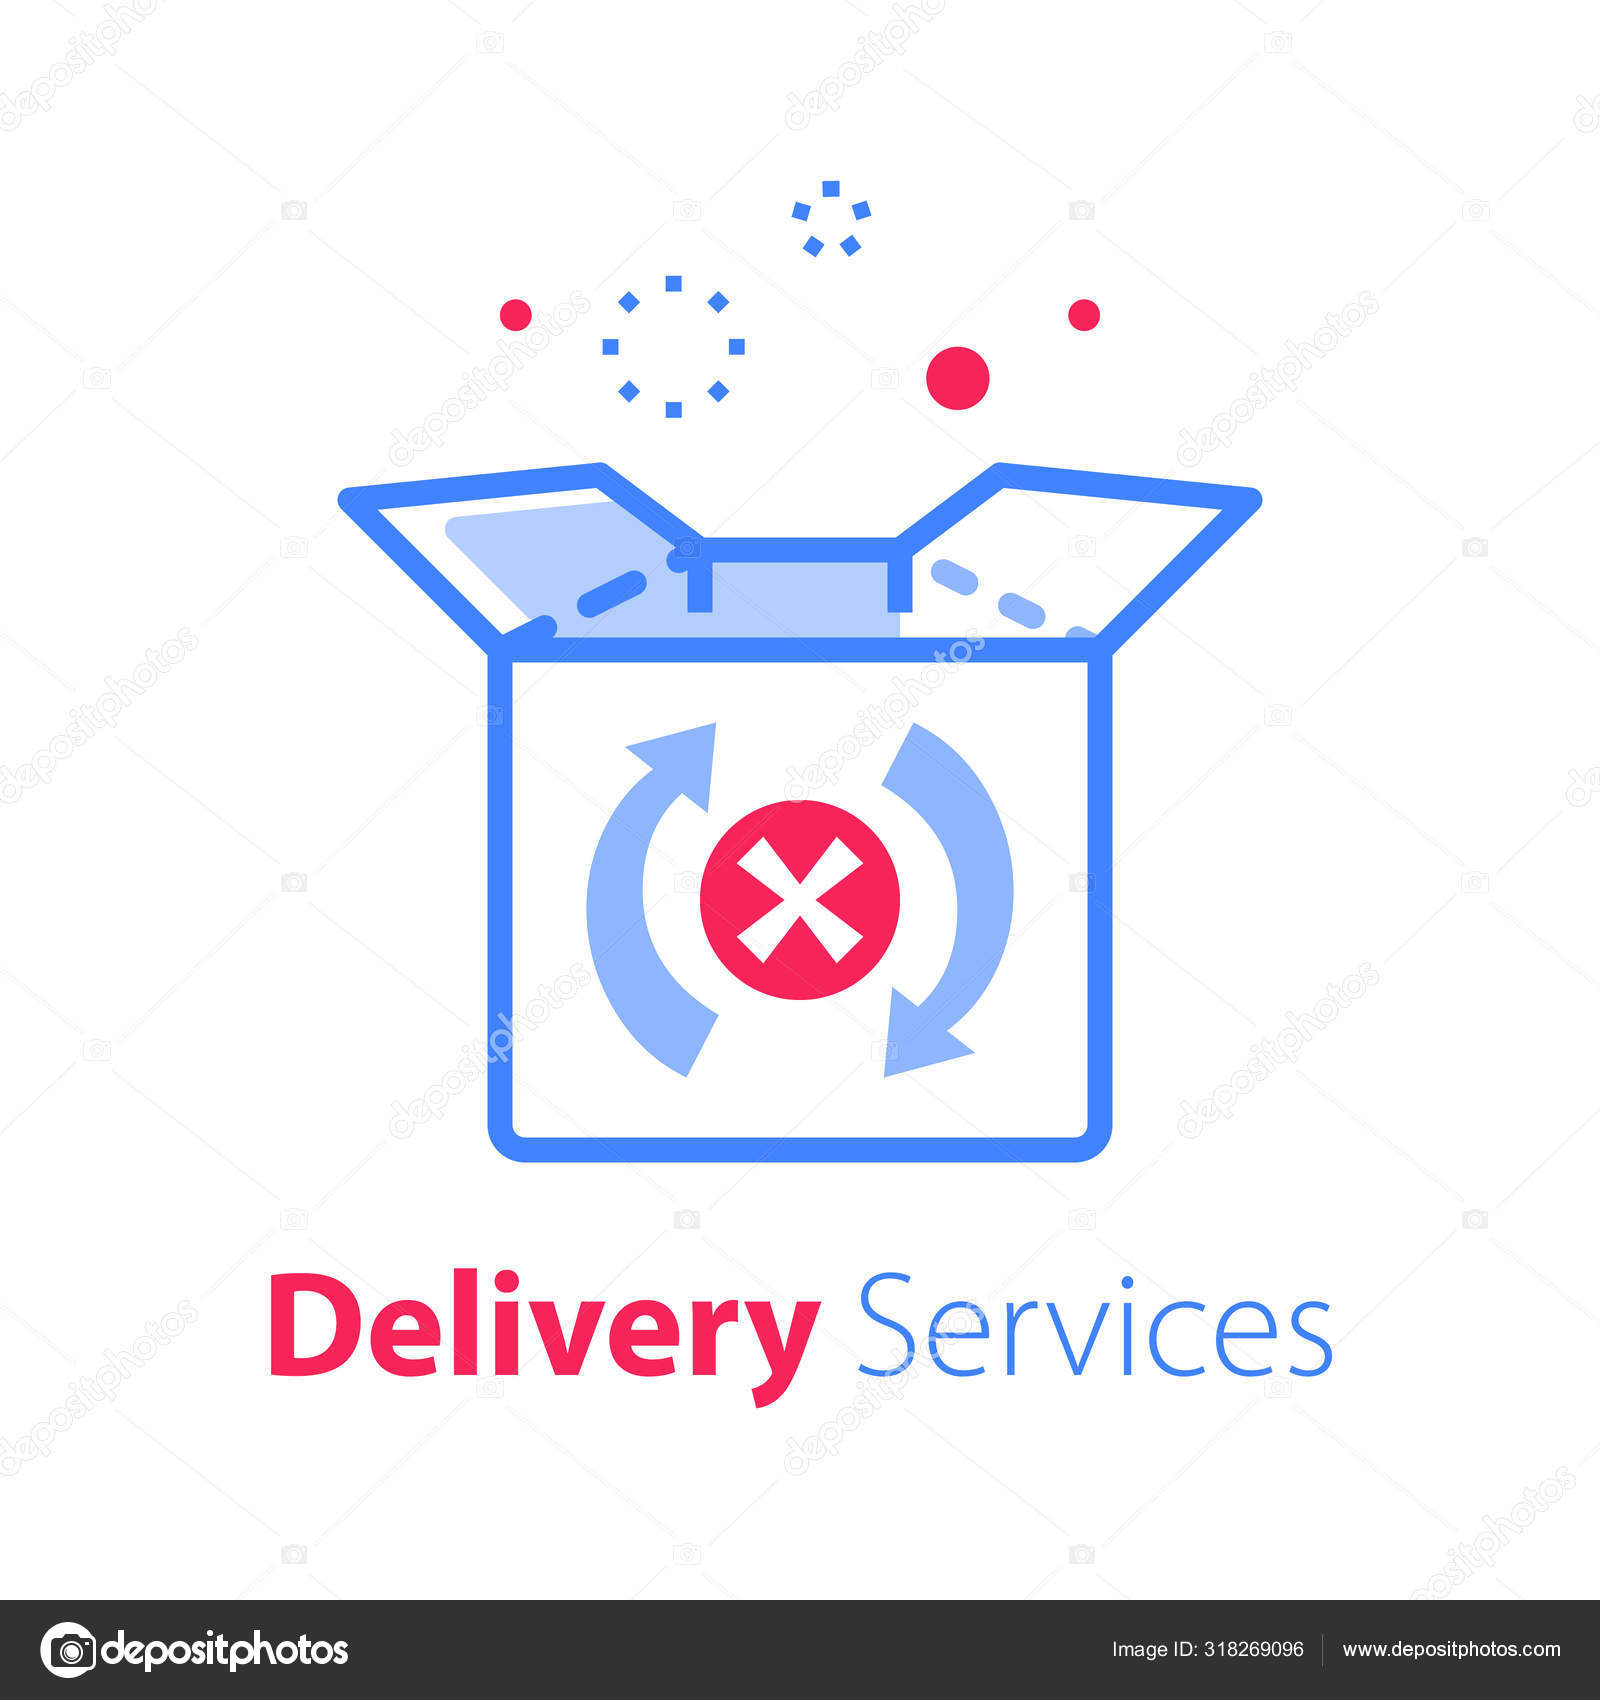 depositphotos_318269096-stock-illustration-delivery-error-receive-mixed-up.jpg